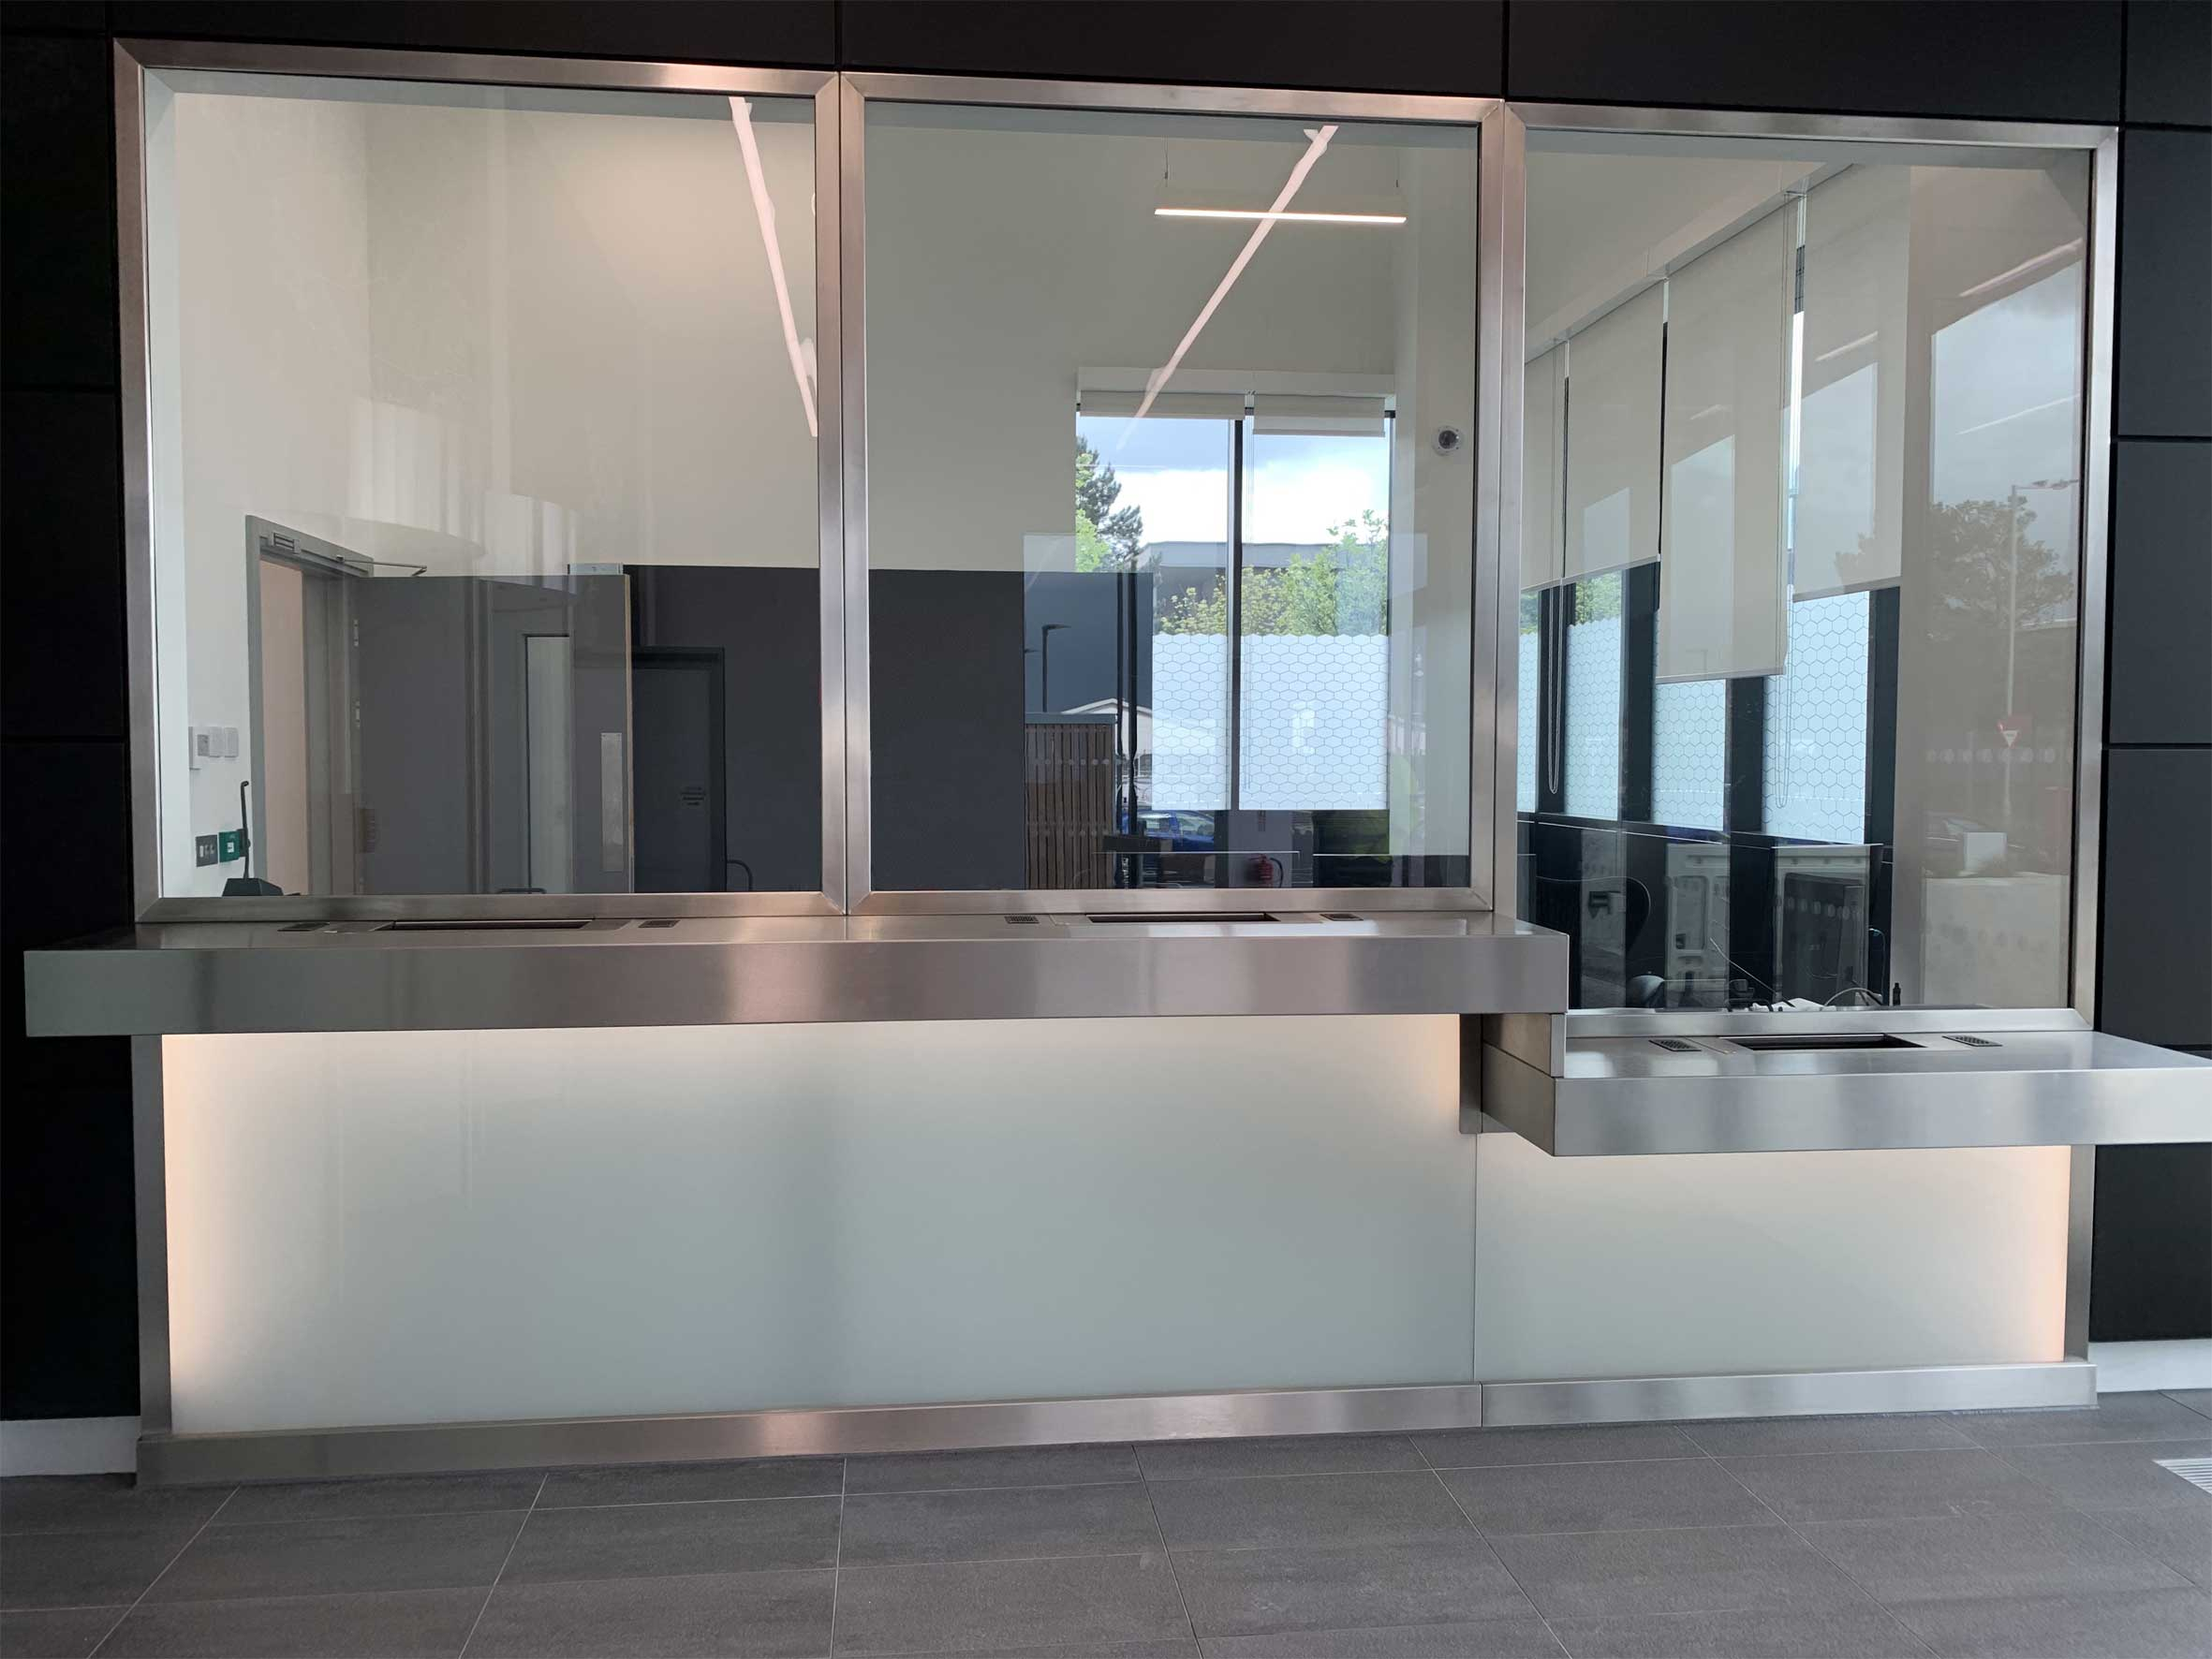 Data Center Security Reception Desk, Counter & Screen.jpg